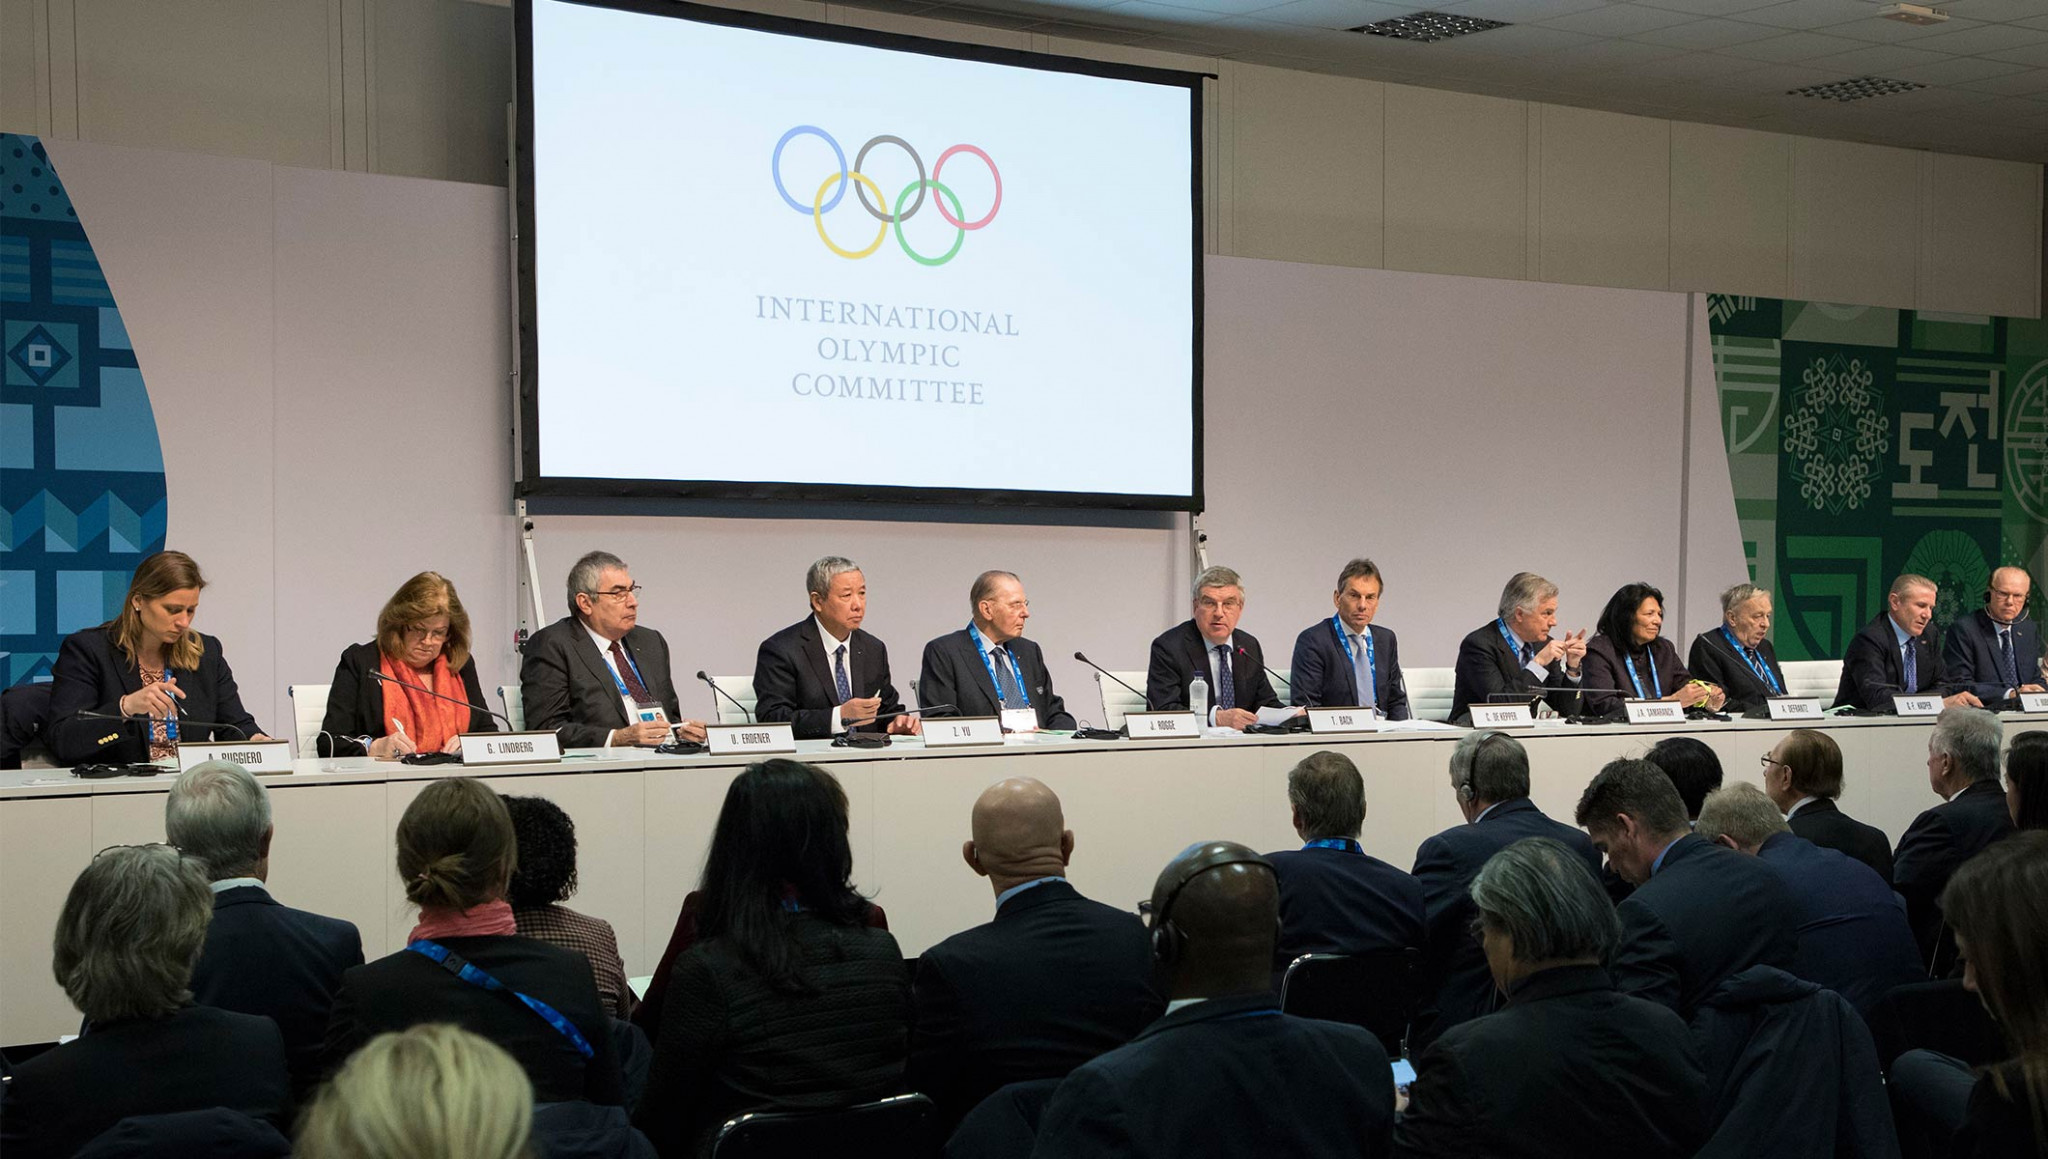 IOC Executive Board members pictured during the IOC Session today ©IOC